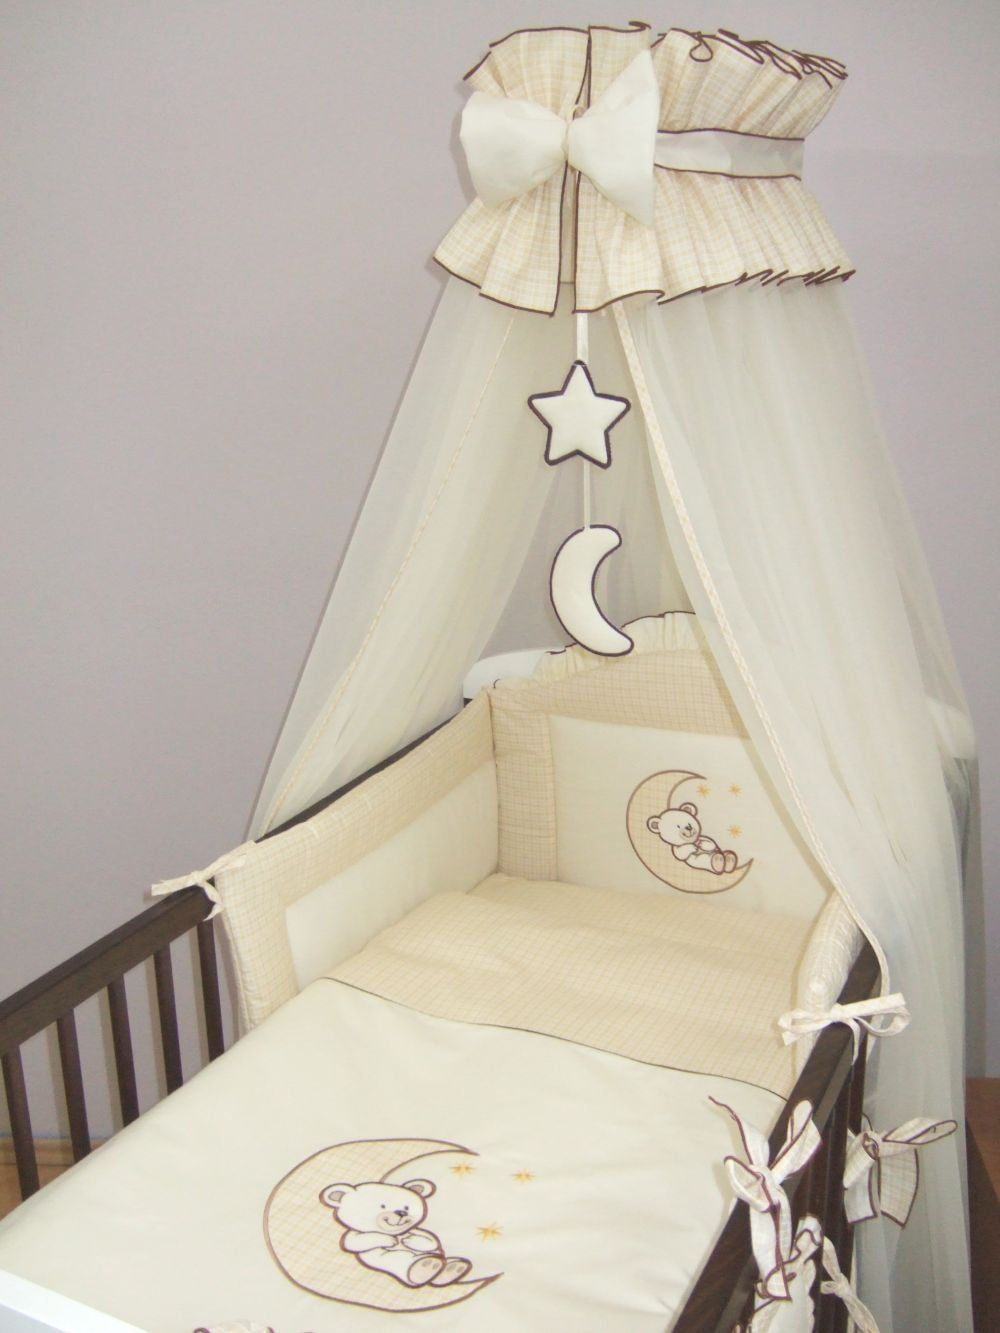 Baby Cots Uk 5 piece baby cot bed bedding set moon cot 120 x 60cm cream 5 piece baby cot bed bedding set moon cot 120 x 60cm sisterspd